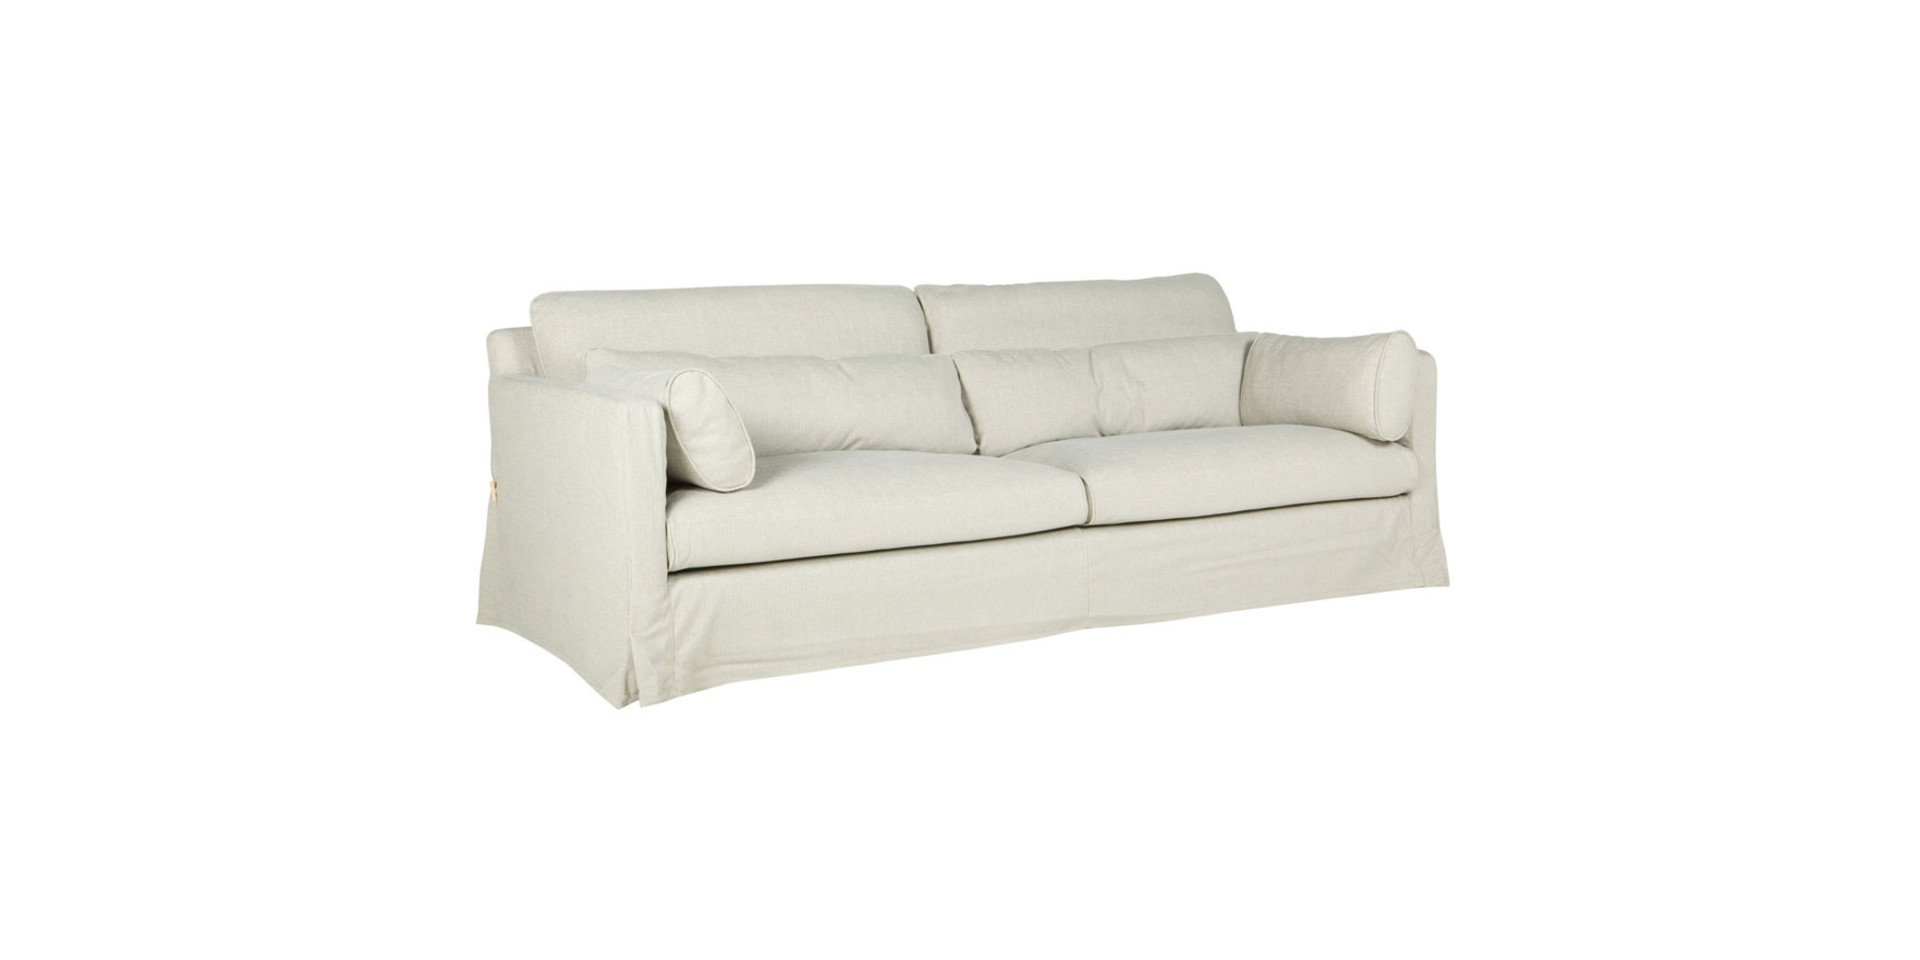 sits-sara-canape-3seater_flossy6_light_grey_2